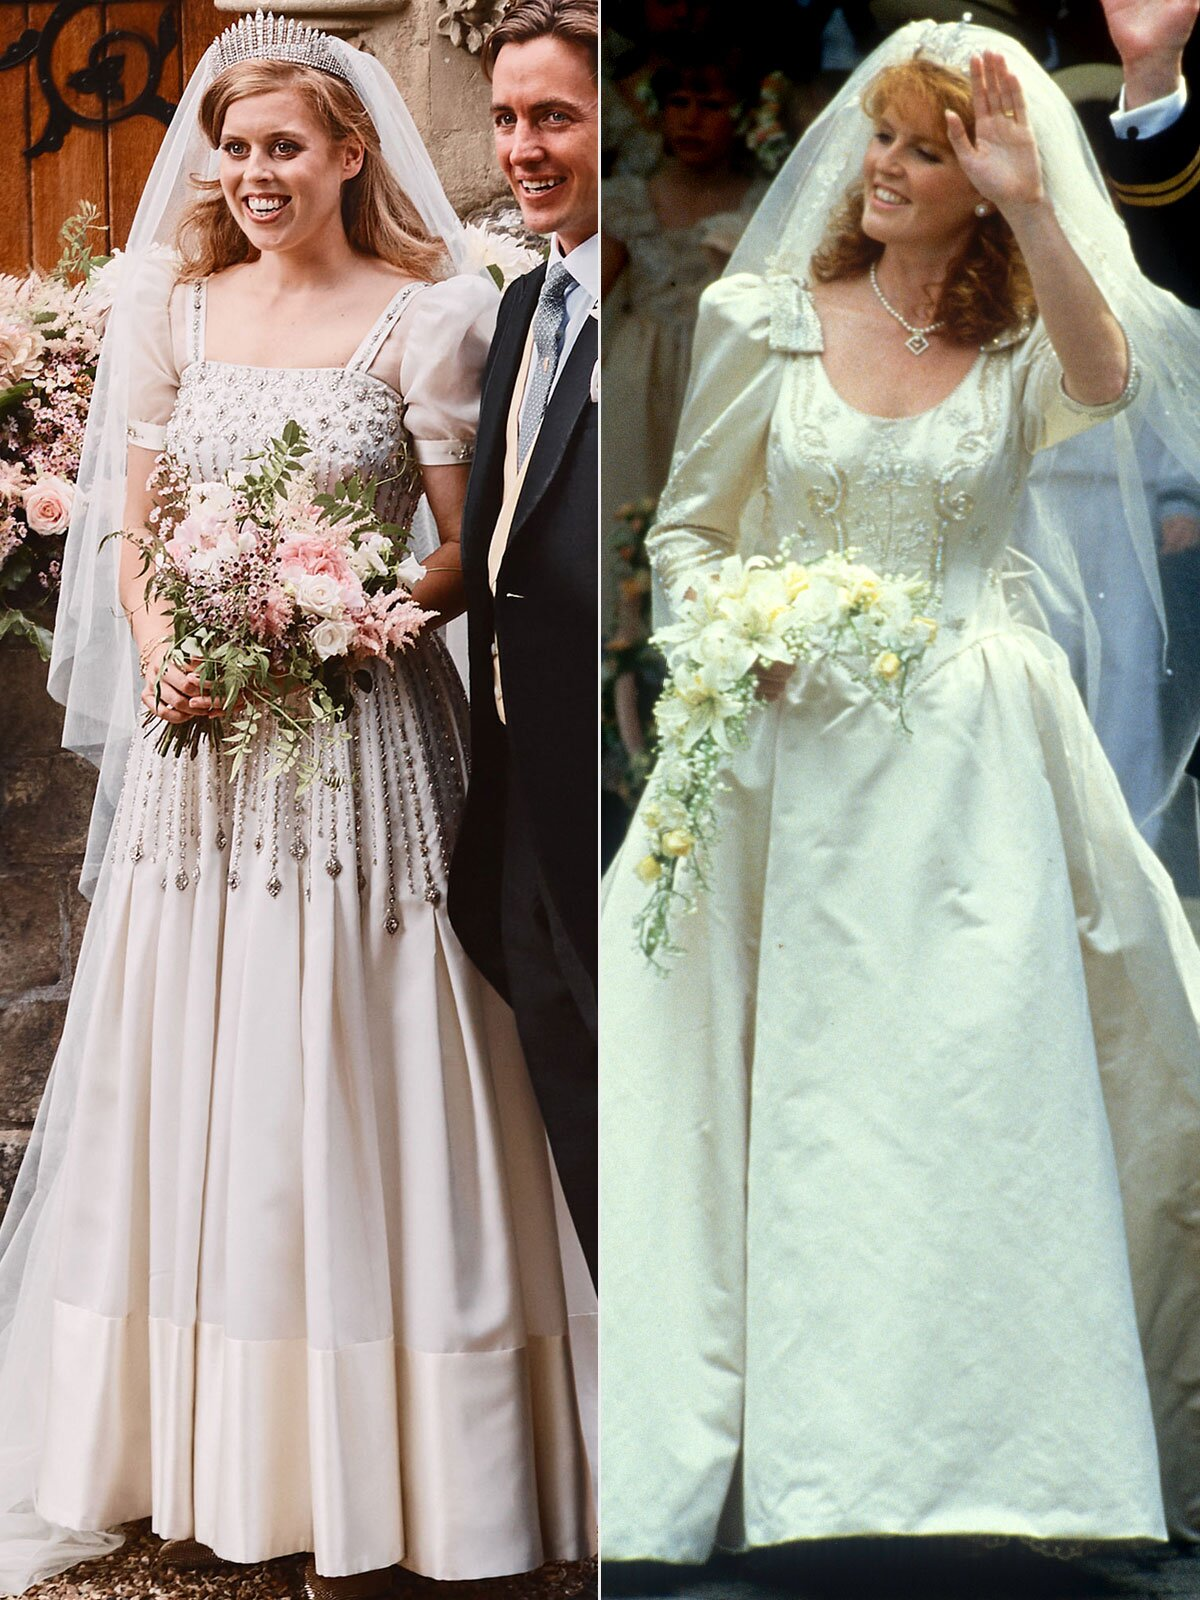 Princess Beatrice Mirrored Mom Sarah Ferguson On Her Wedding Day